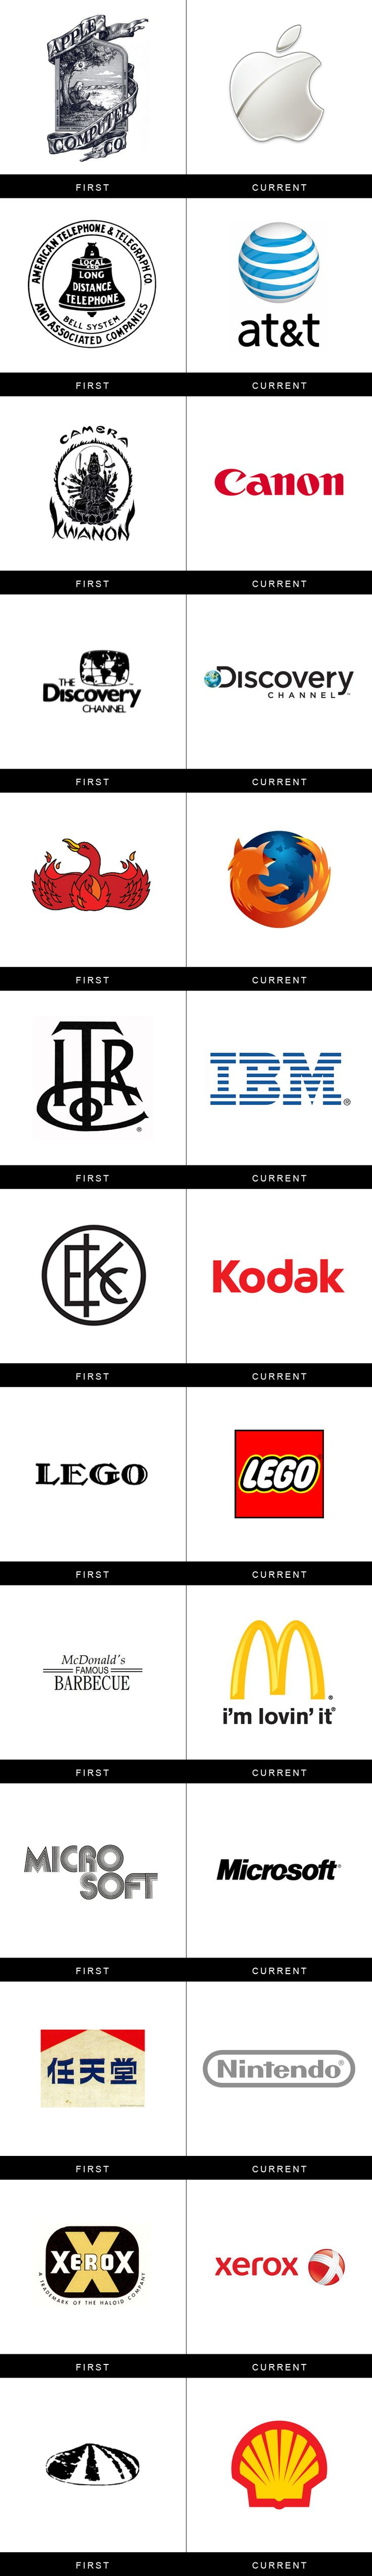 The evolution of company logos; then and now